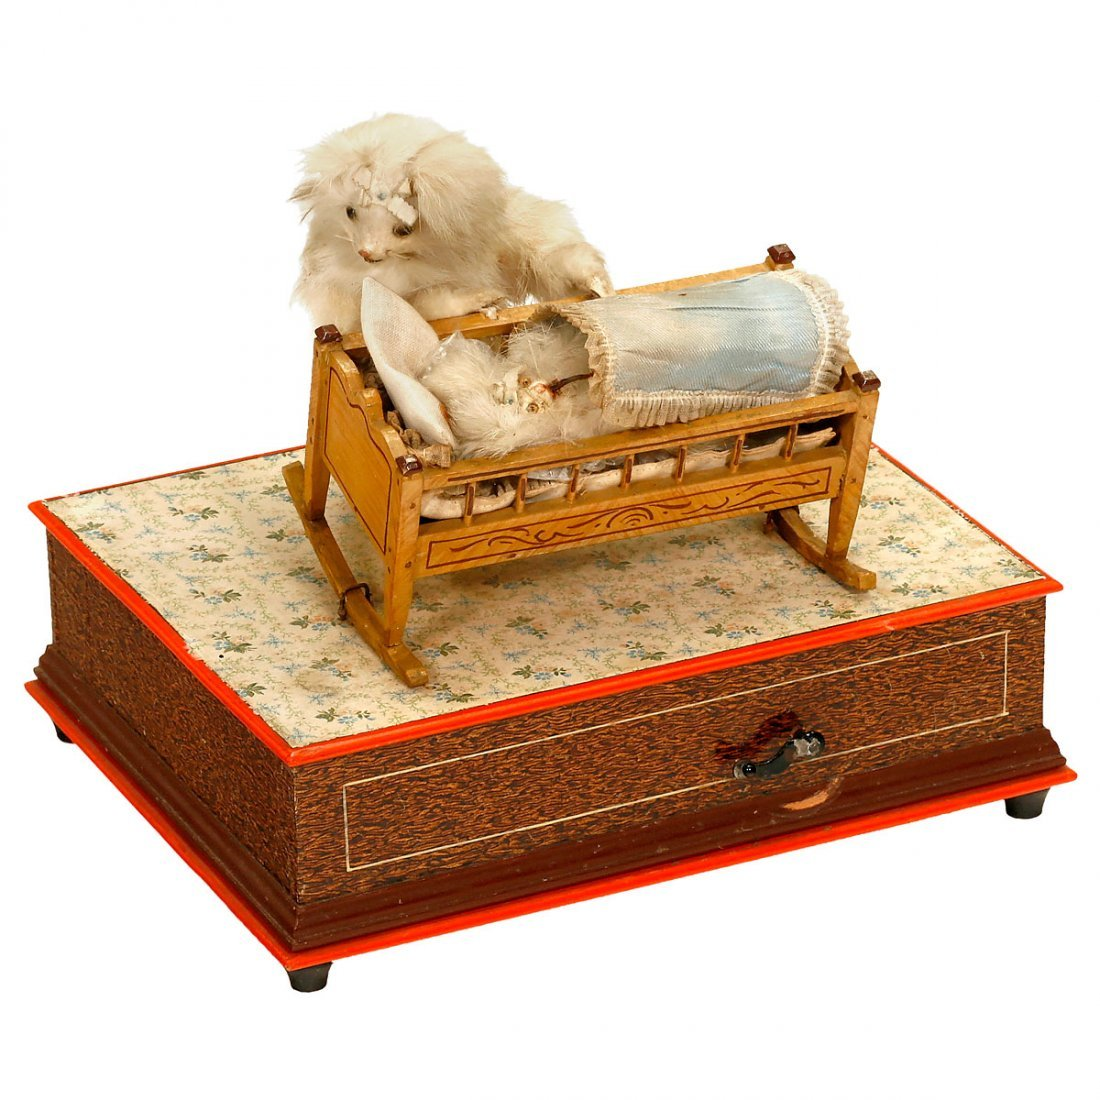 Mother Cat Musical Manivelle Automaton, c. 1900